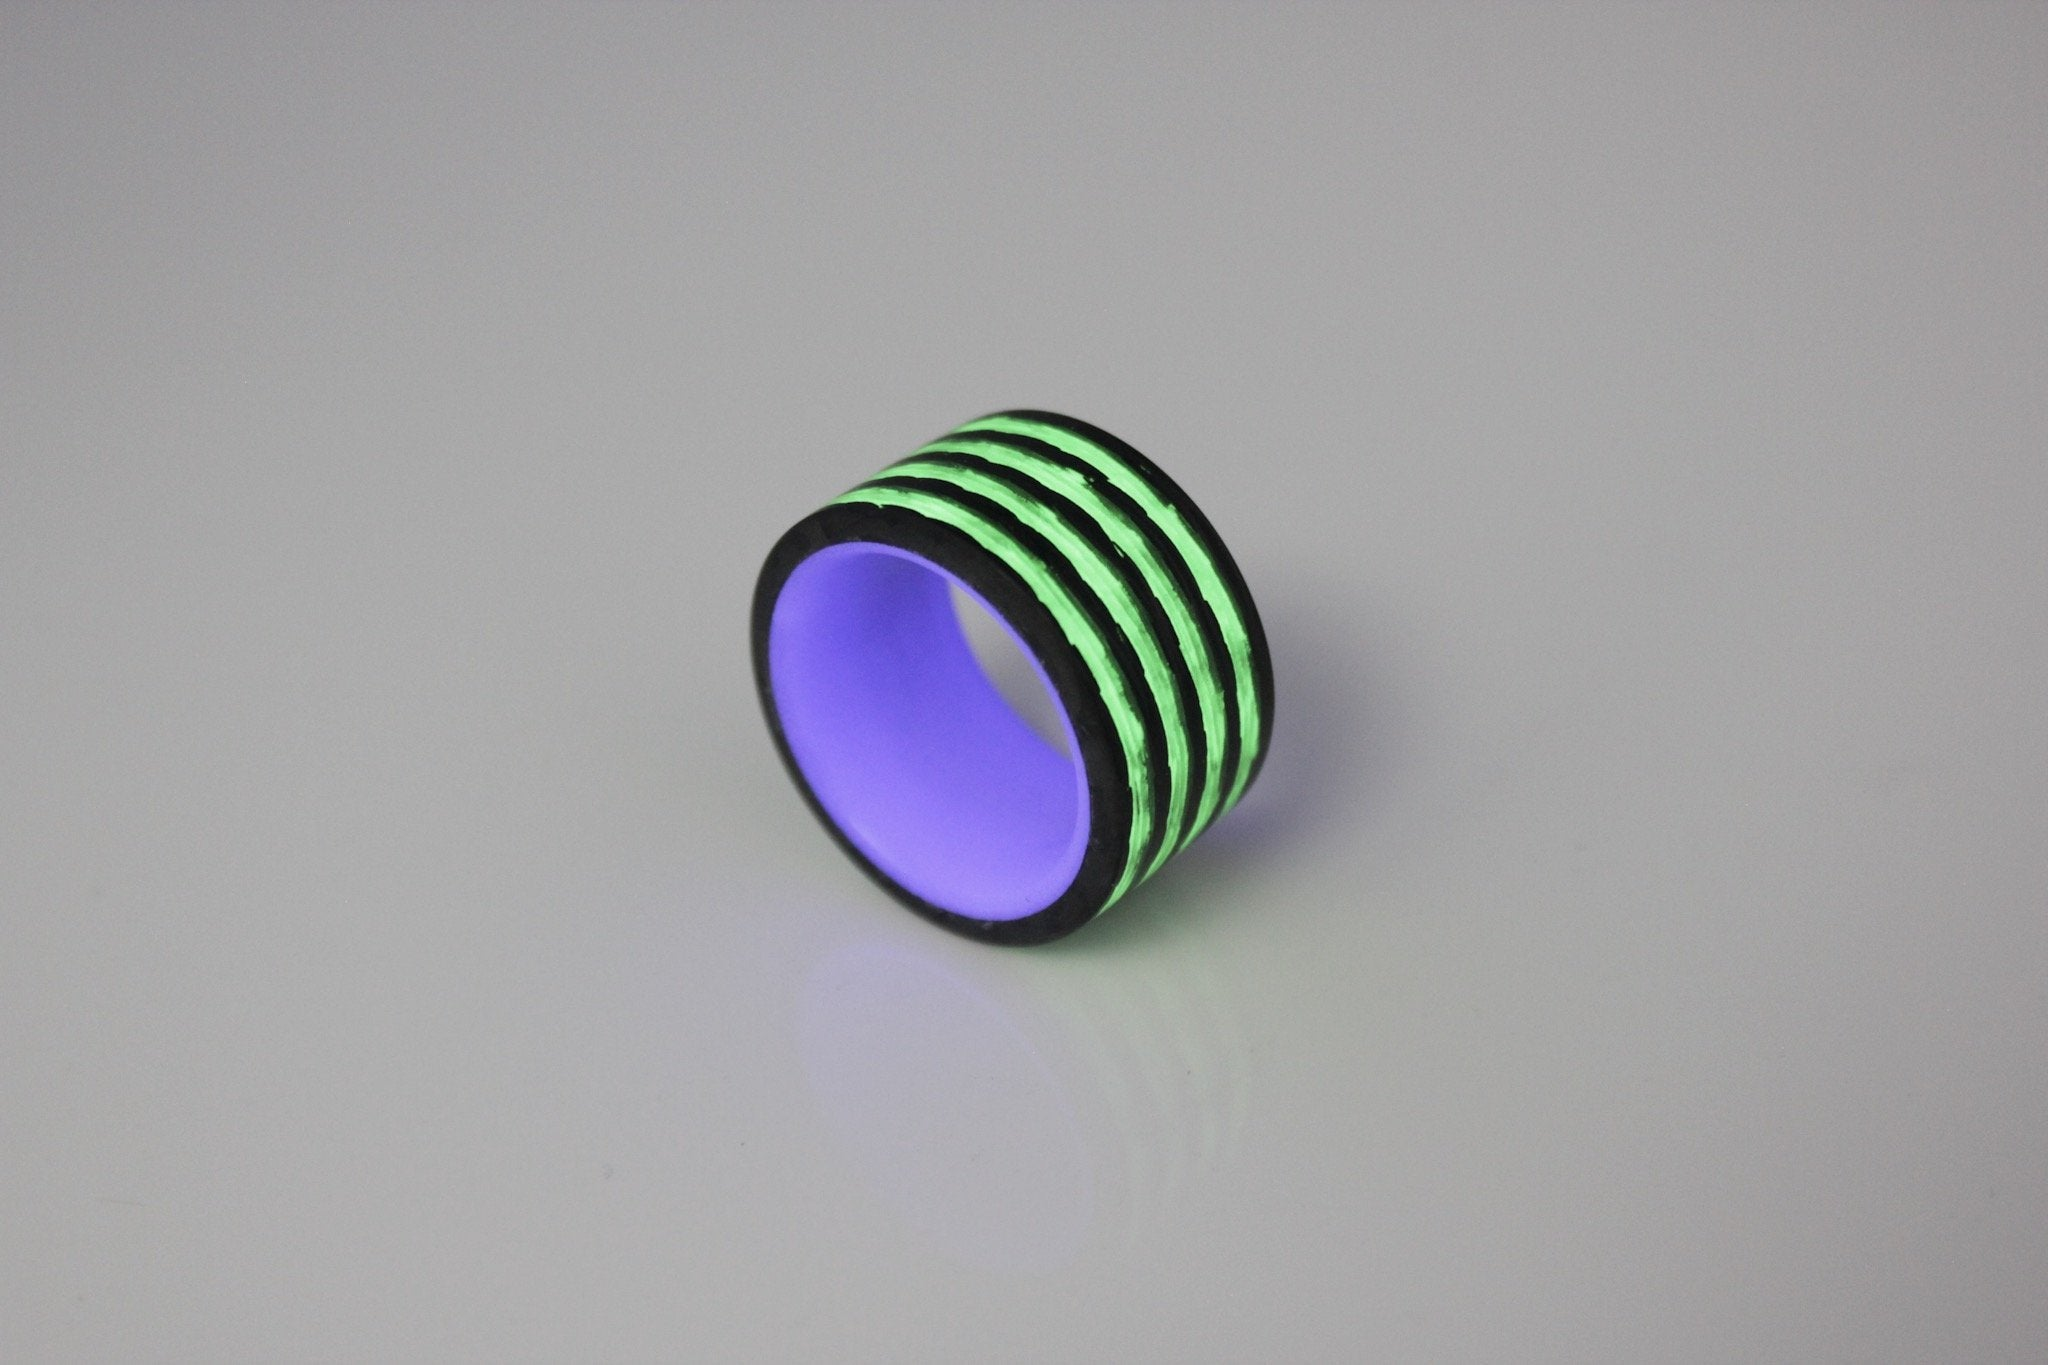 Joker Saturn Carbon Fiber Ring